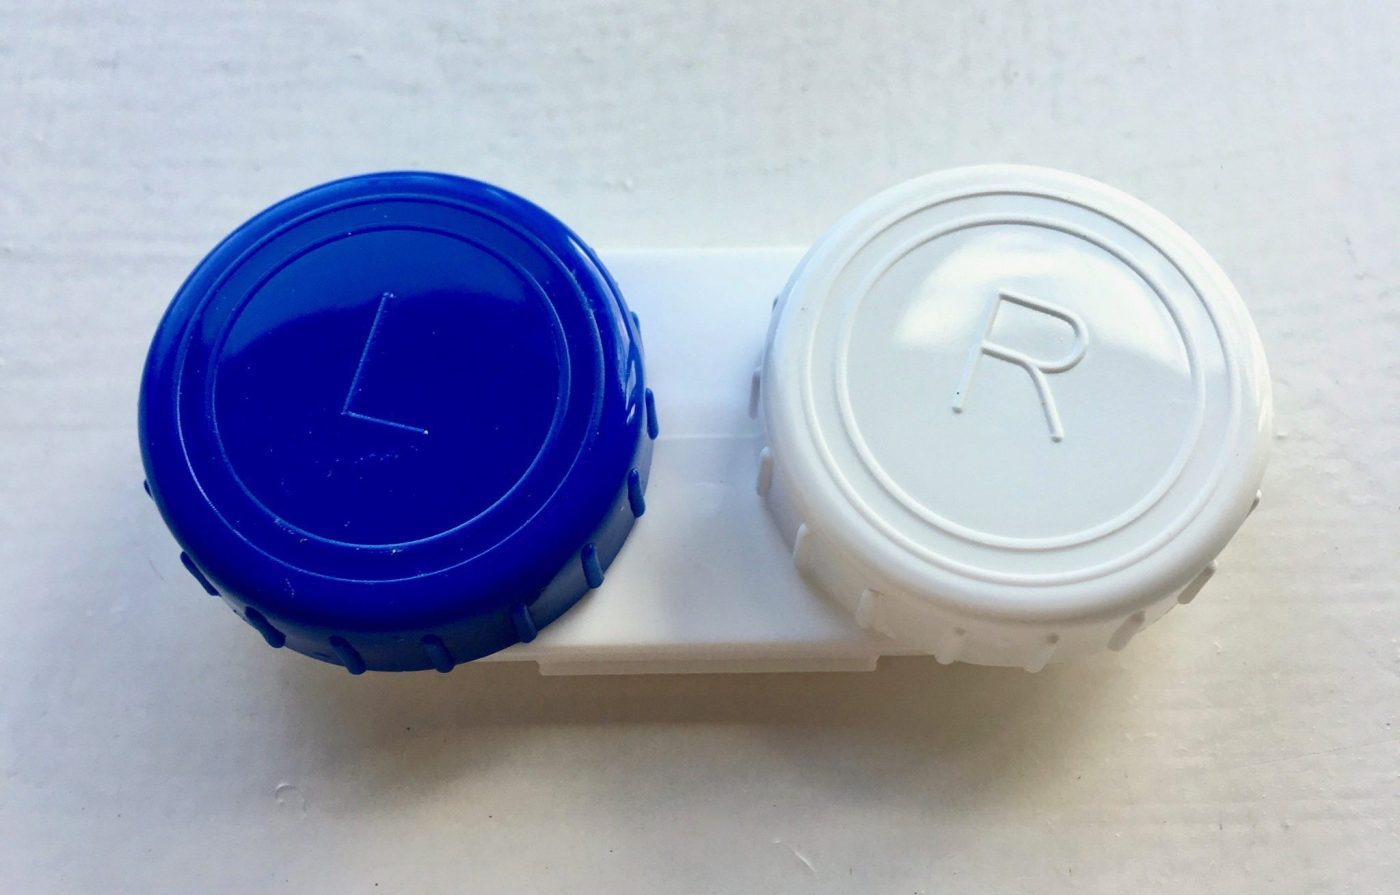 Off-brand contact lenses container